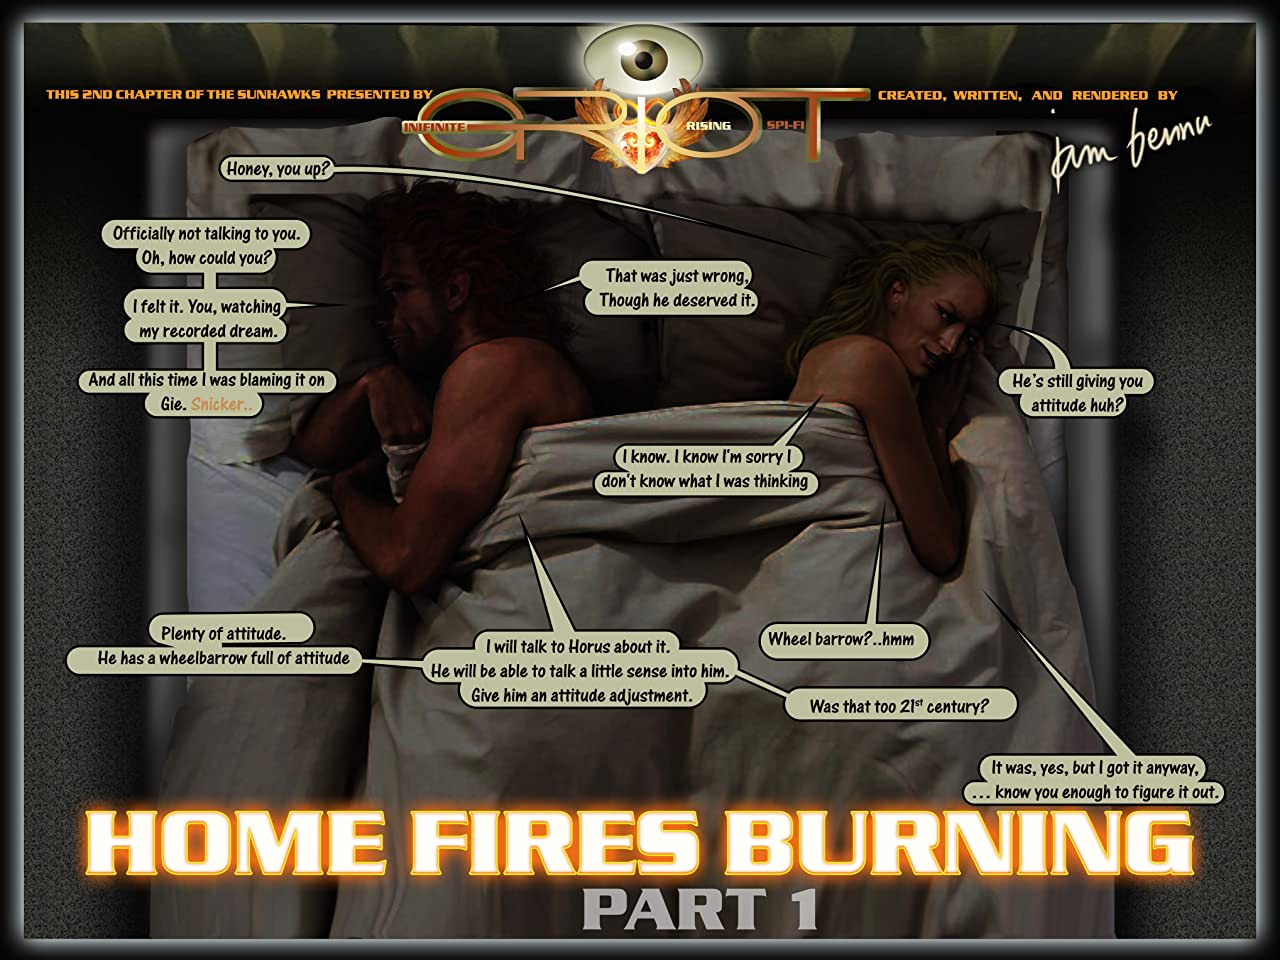 The Sunhawks Vol. 1: Home Fires Burning - Part 1